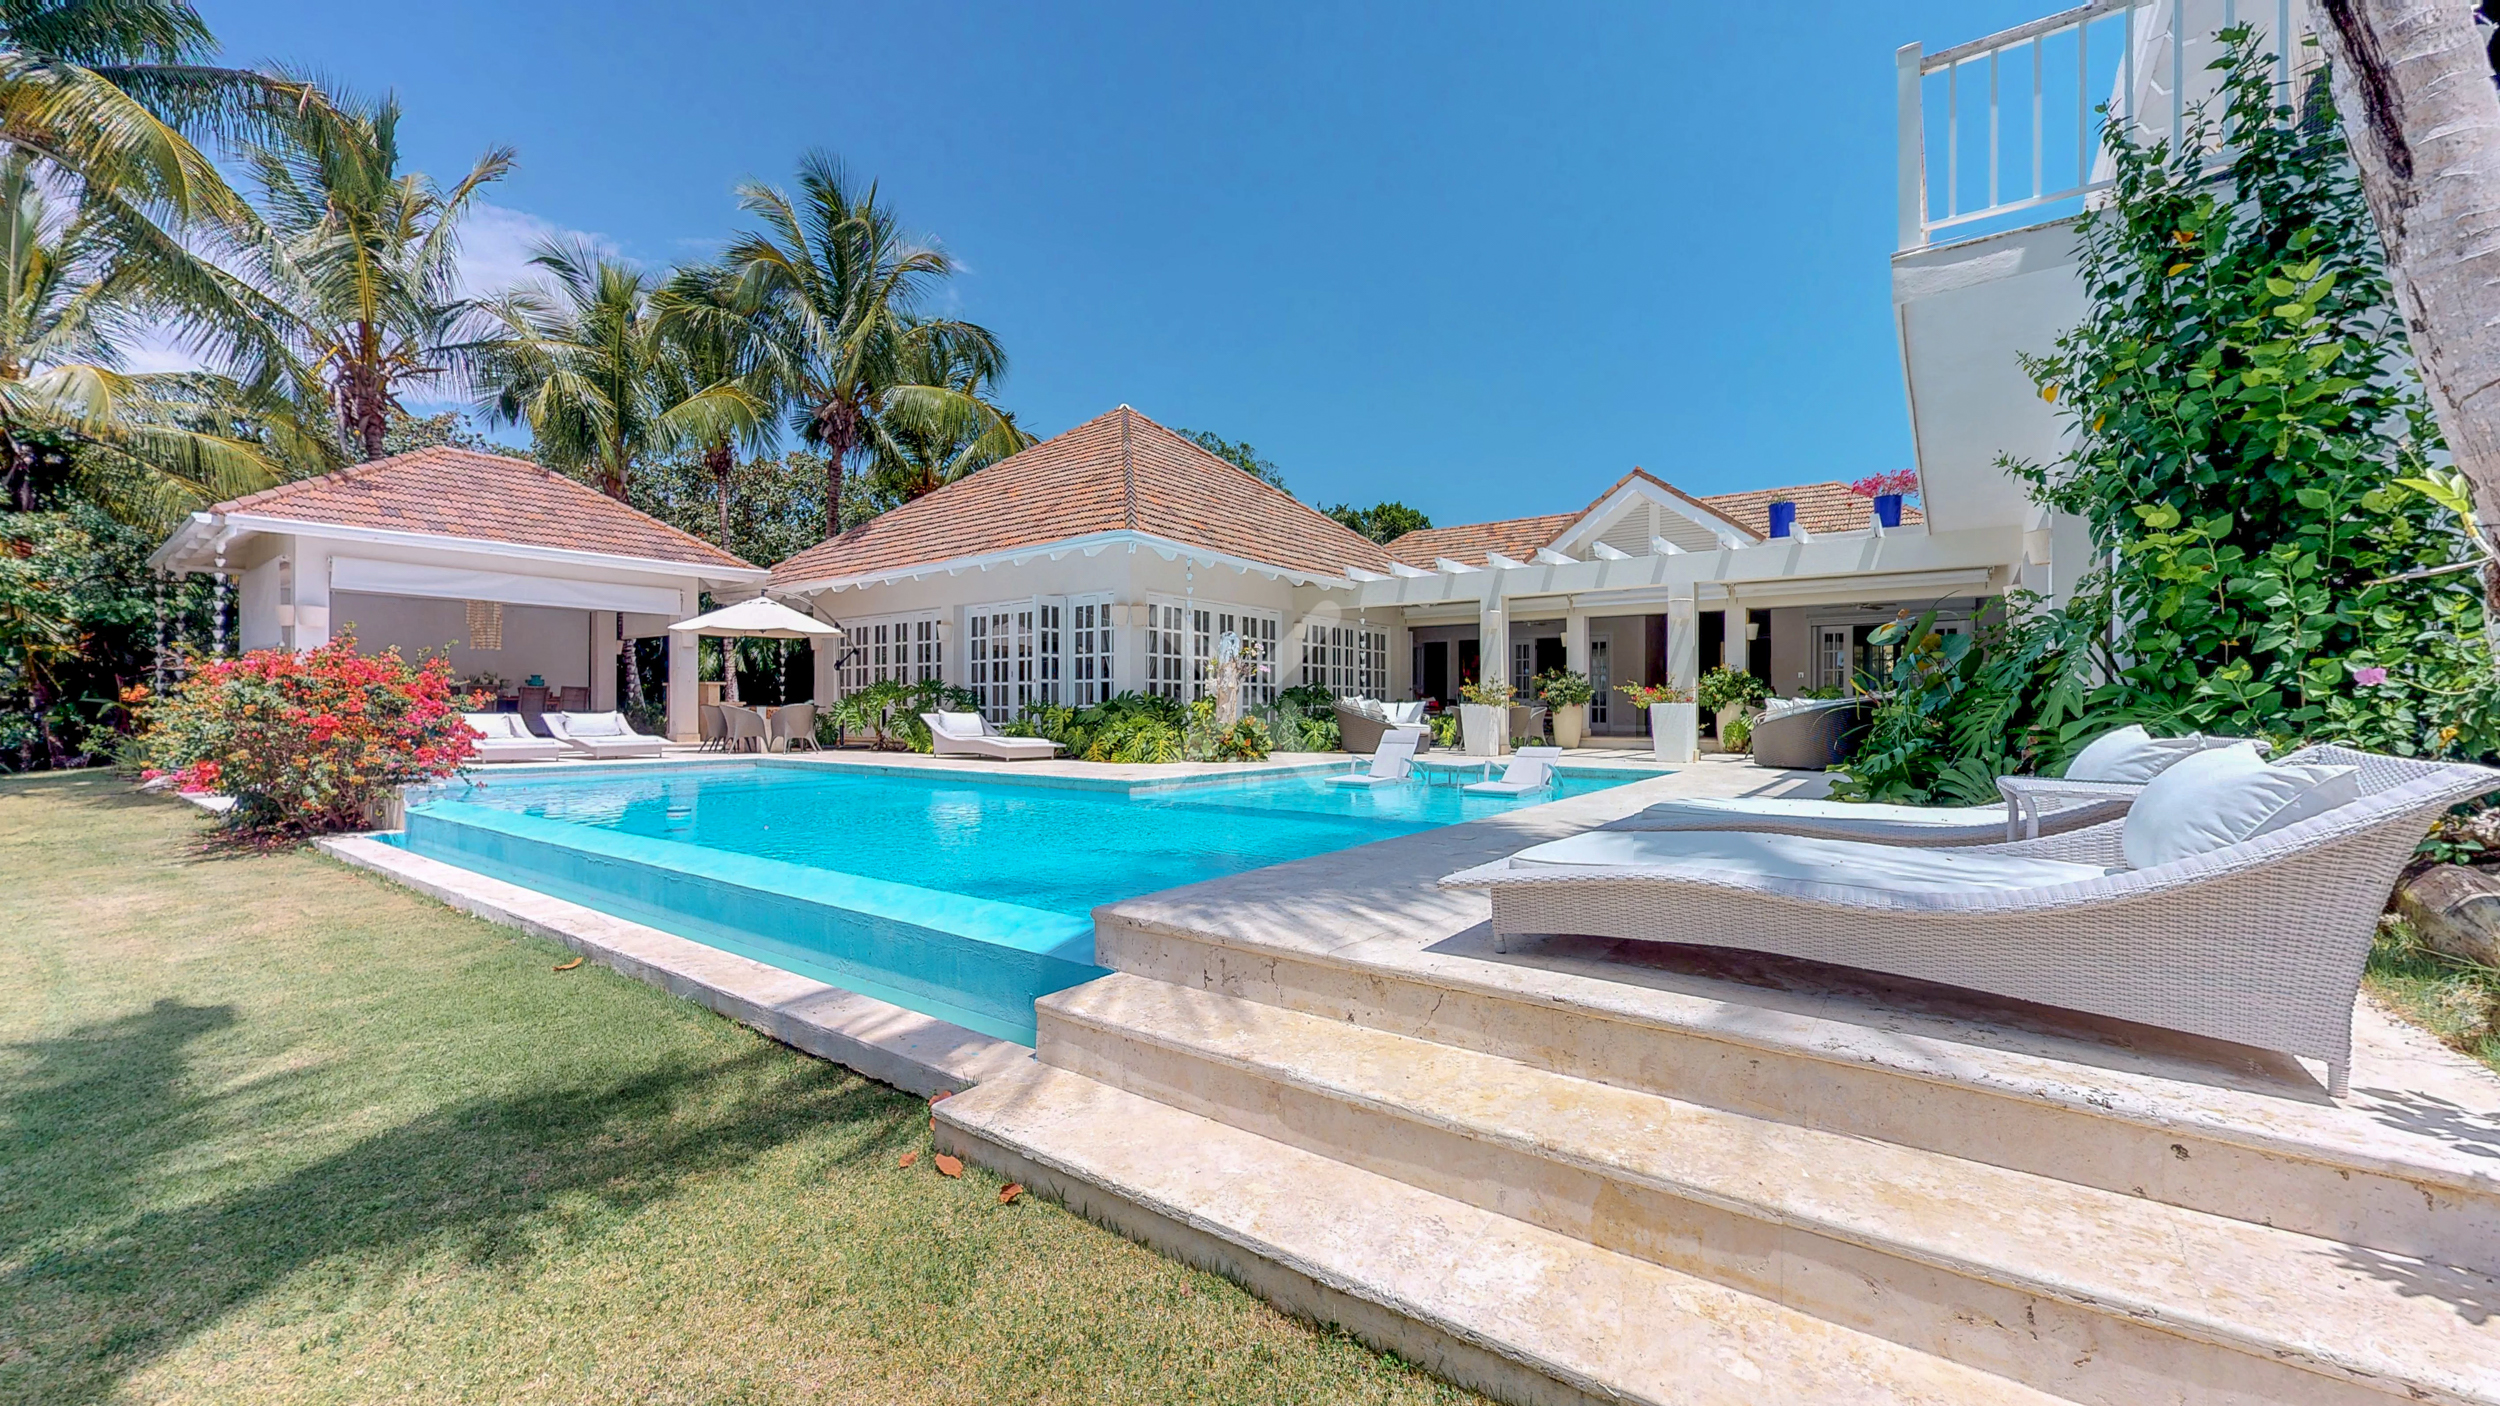 Spectacular and Luxurious Villa For Sale in Punta Cana